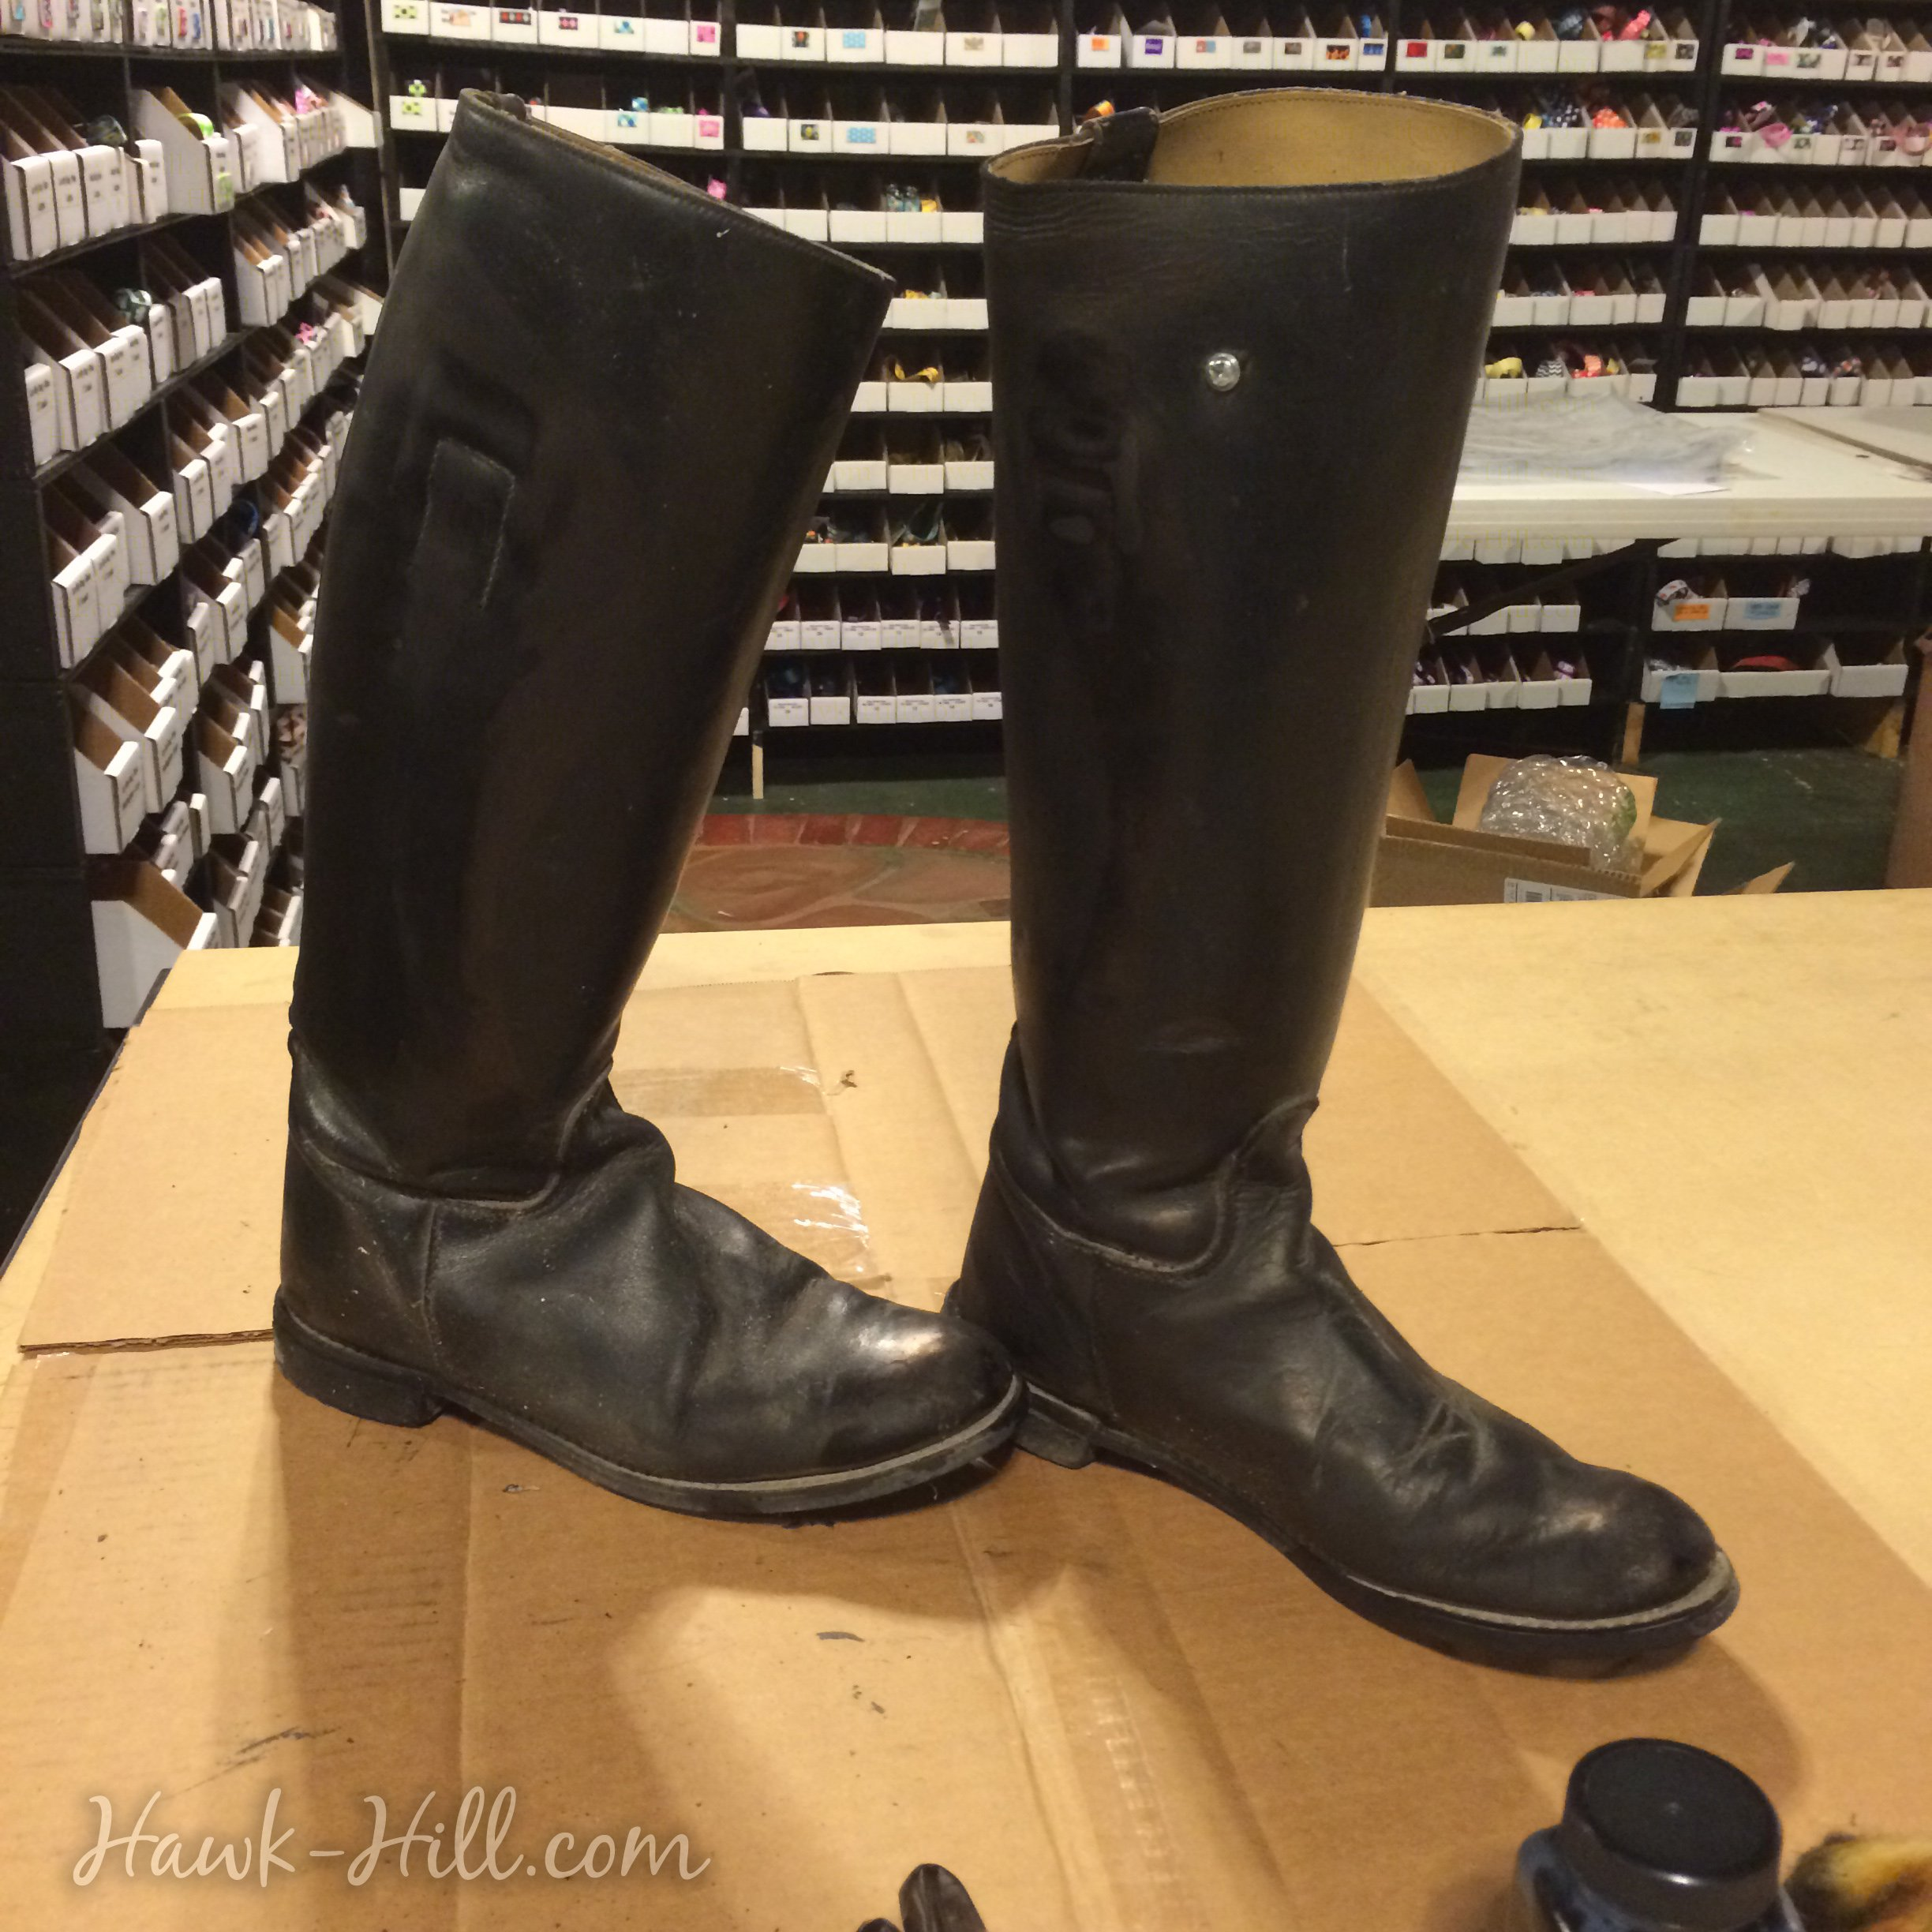 Worn leather riding boots looking new with an application of dye.